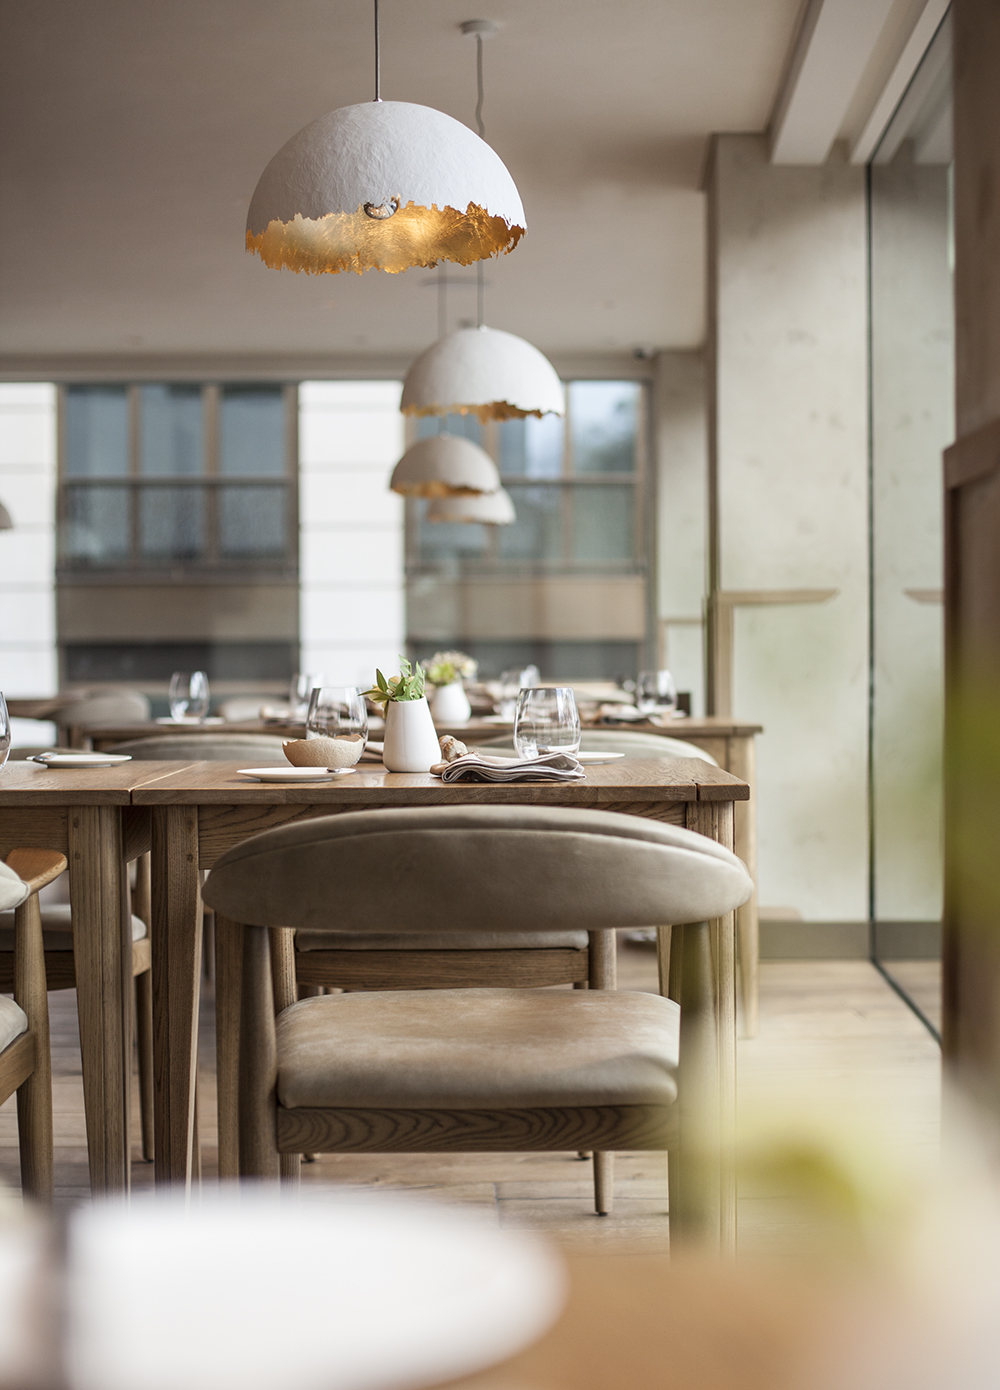 Tables and Chairs at Above restaurant offer parkside views at this prime location overlooking Green Park